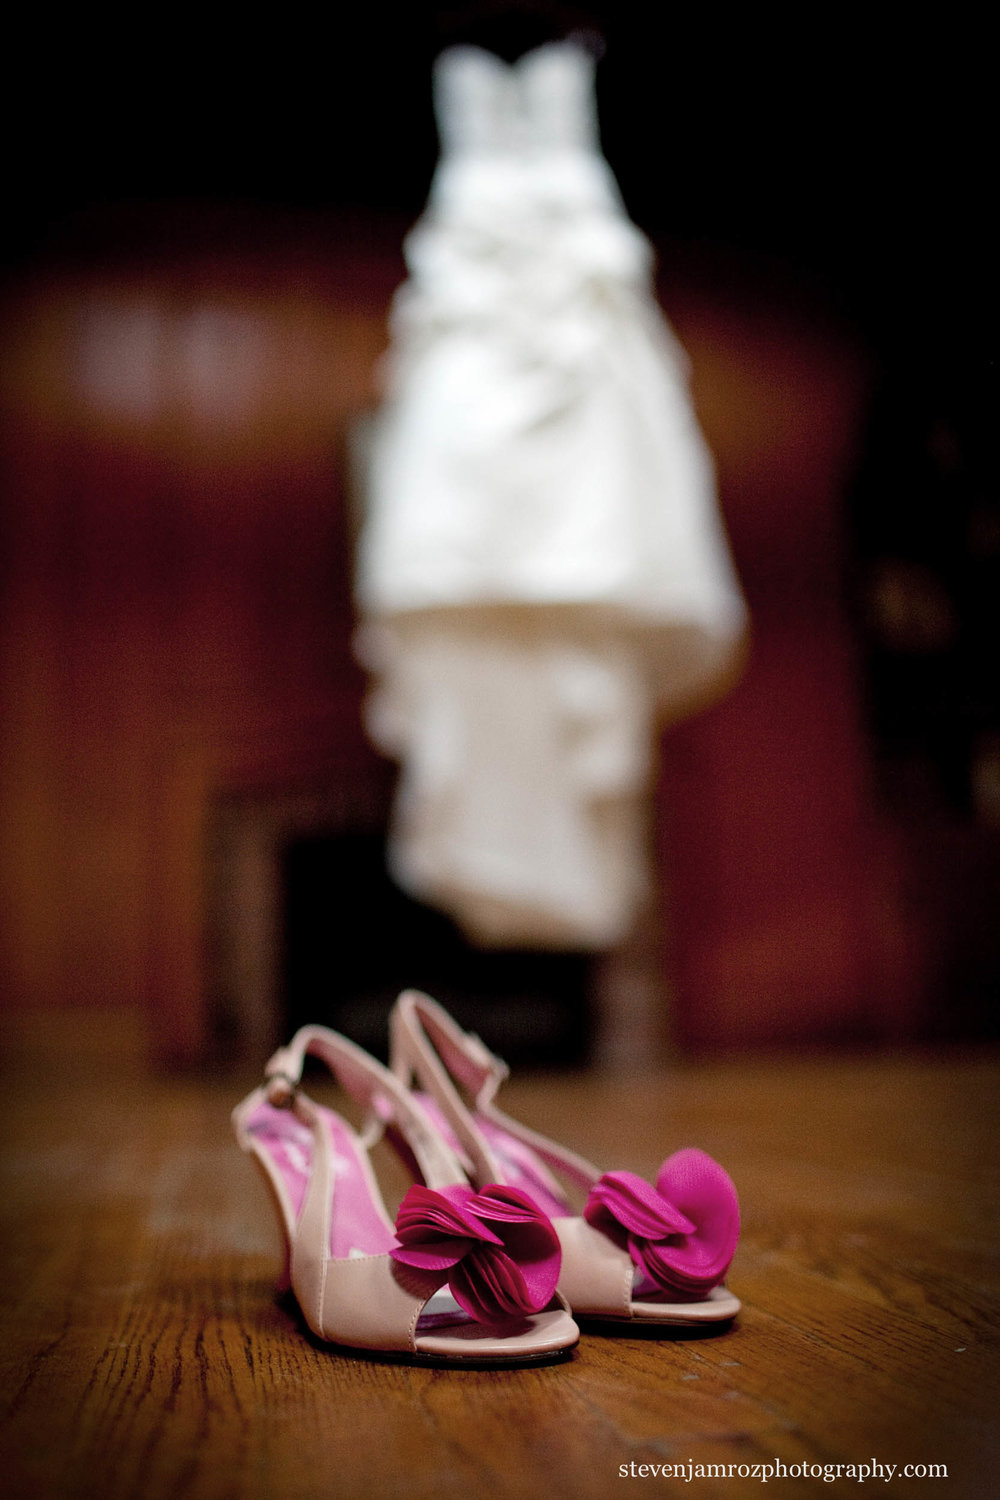 pink-wedding-shoes-nc-wedding-steven-jamroz-photography-0564.jpg